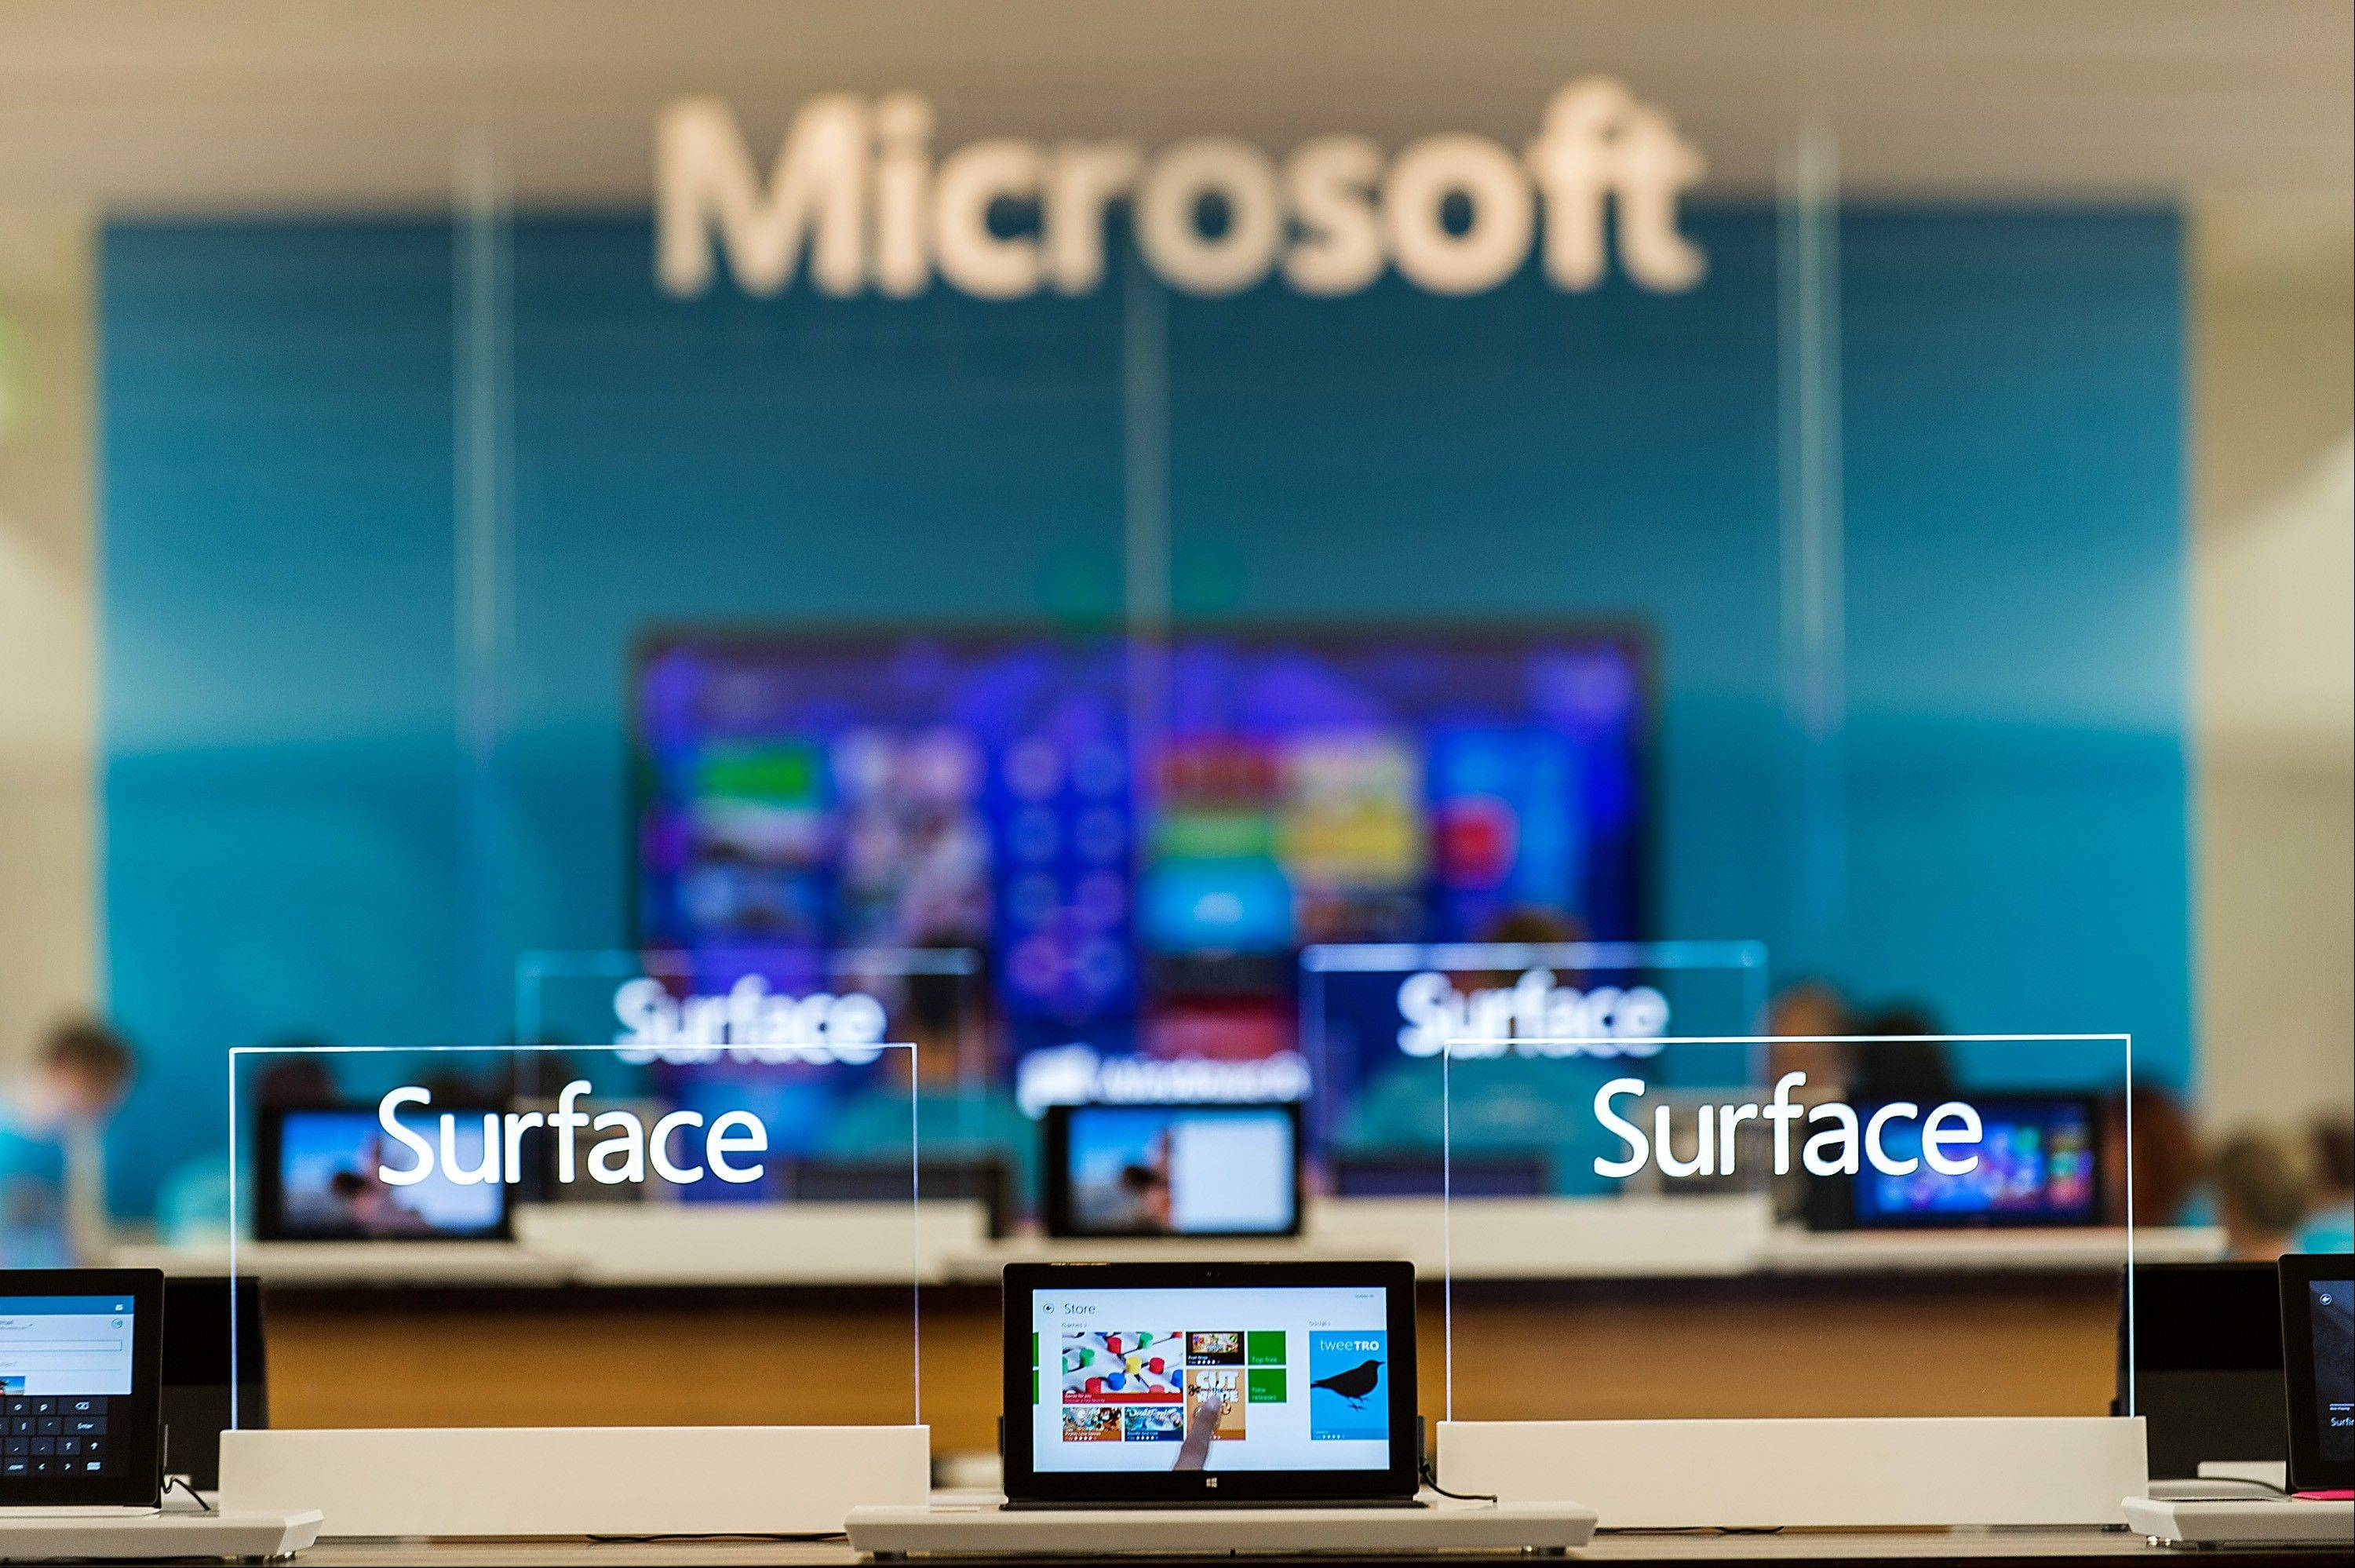 Microsoft Corp. is releasing its latest addition to the Surface line, Surface Pro, today.